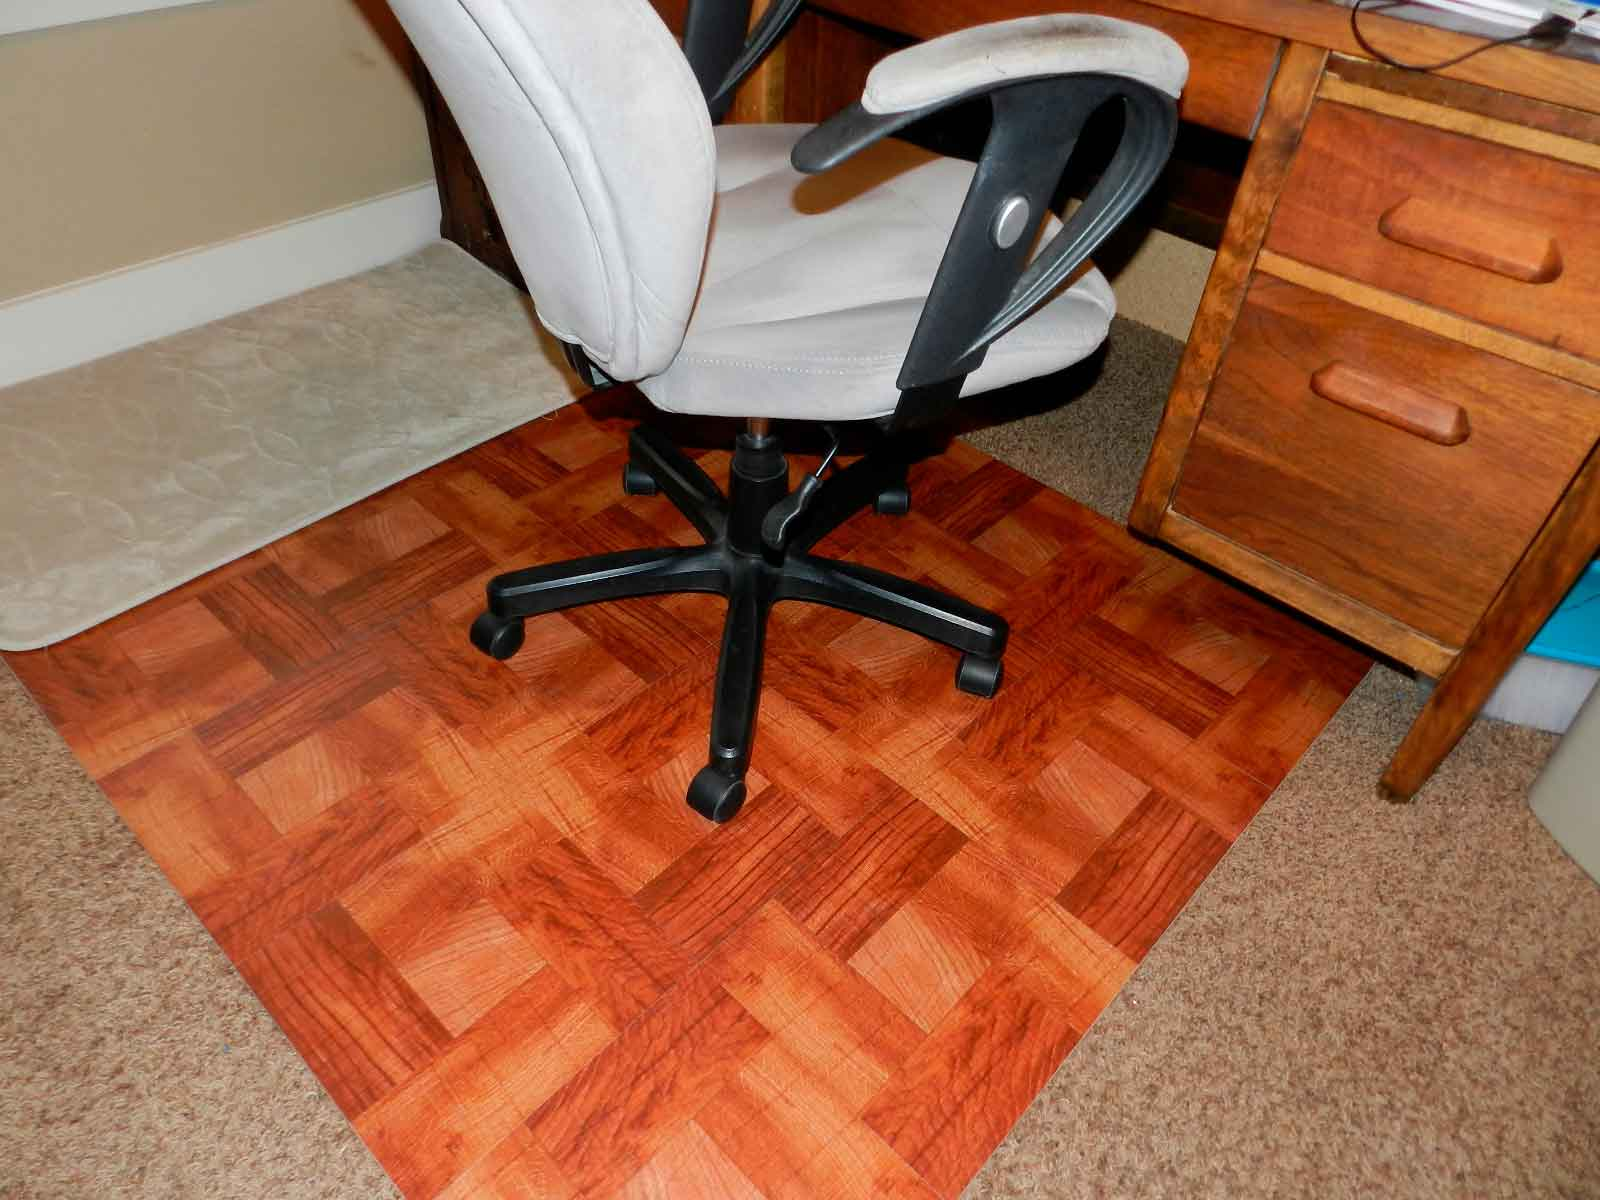 Best chair mat for carpet apr 2018 top rated products review with innovative materials used in office chair casters there will no longer be need for unattractive plastic mats or carpets in the office dailygadgetfo Choice Image